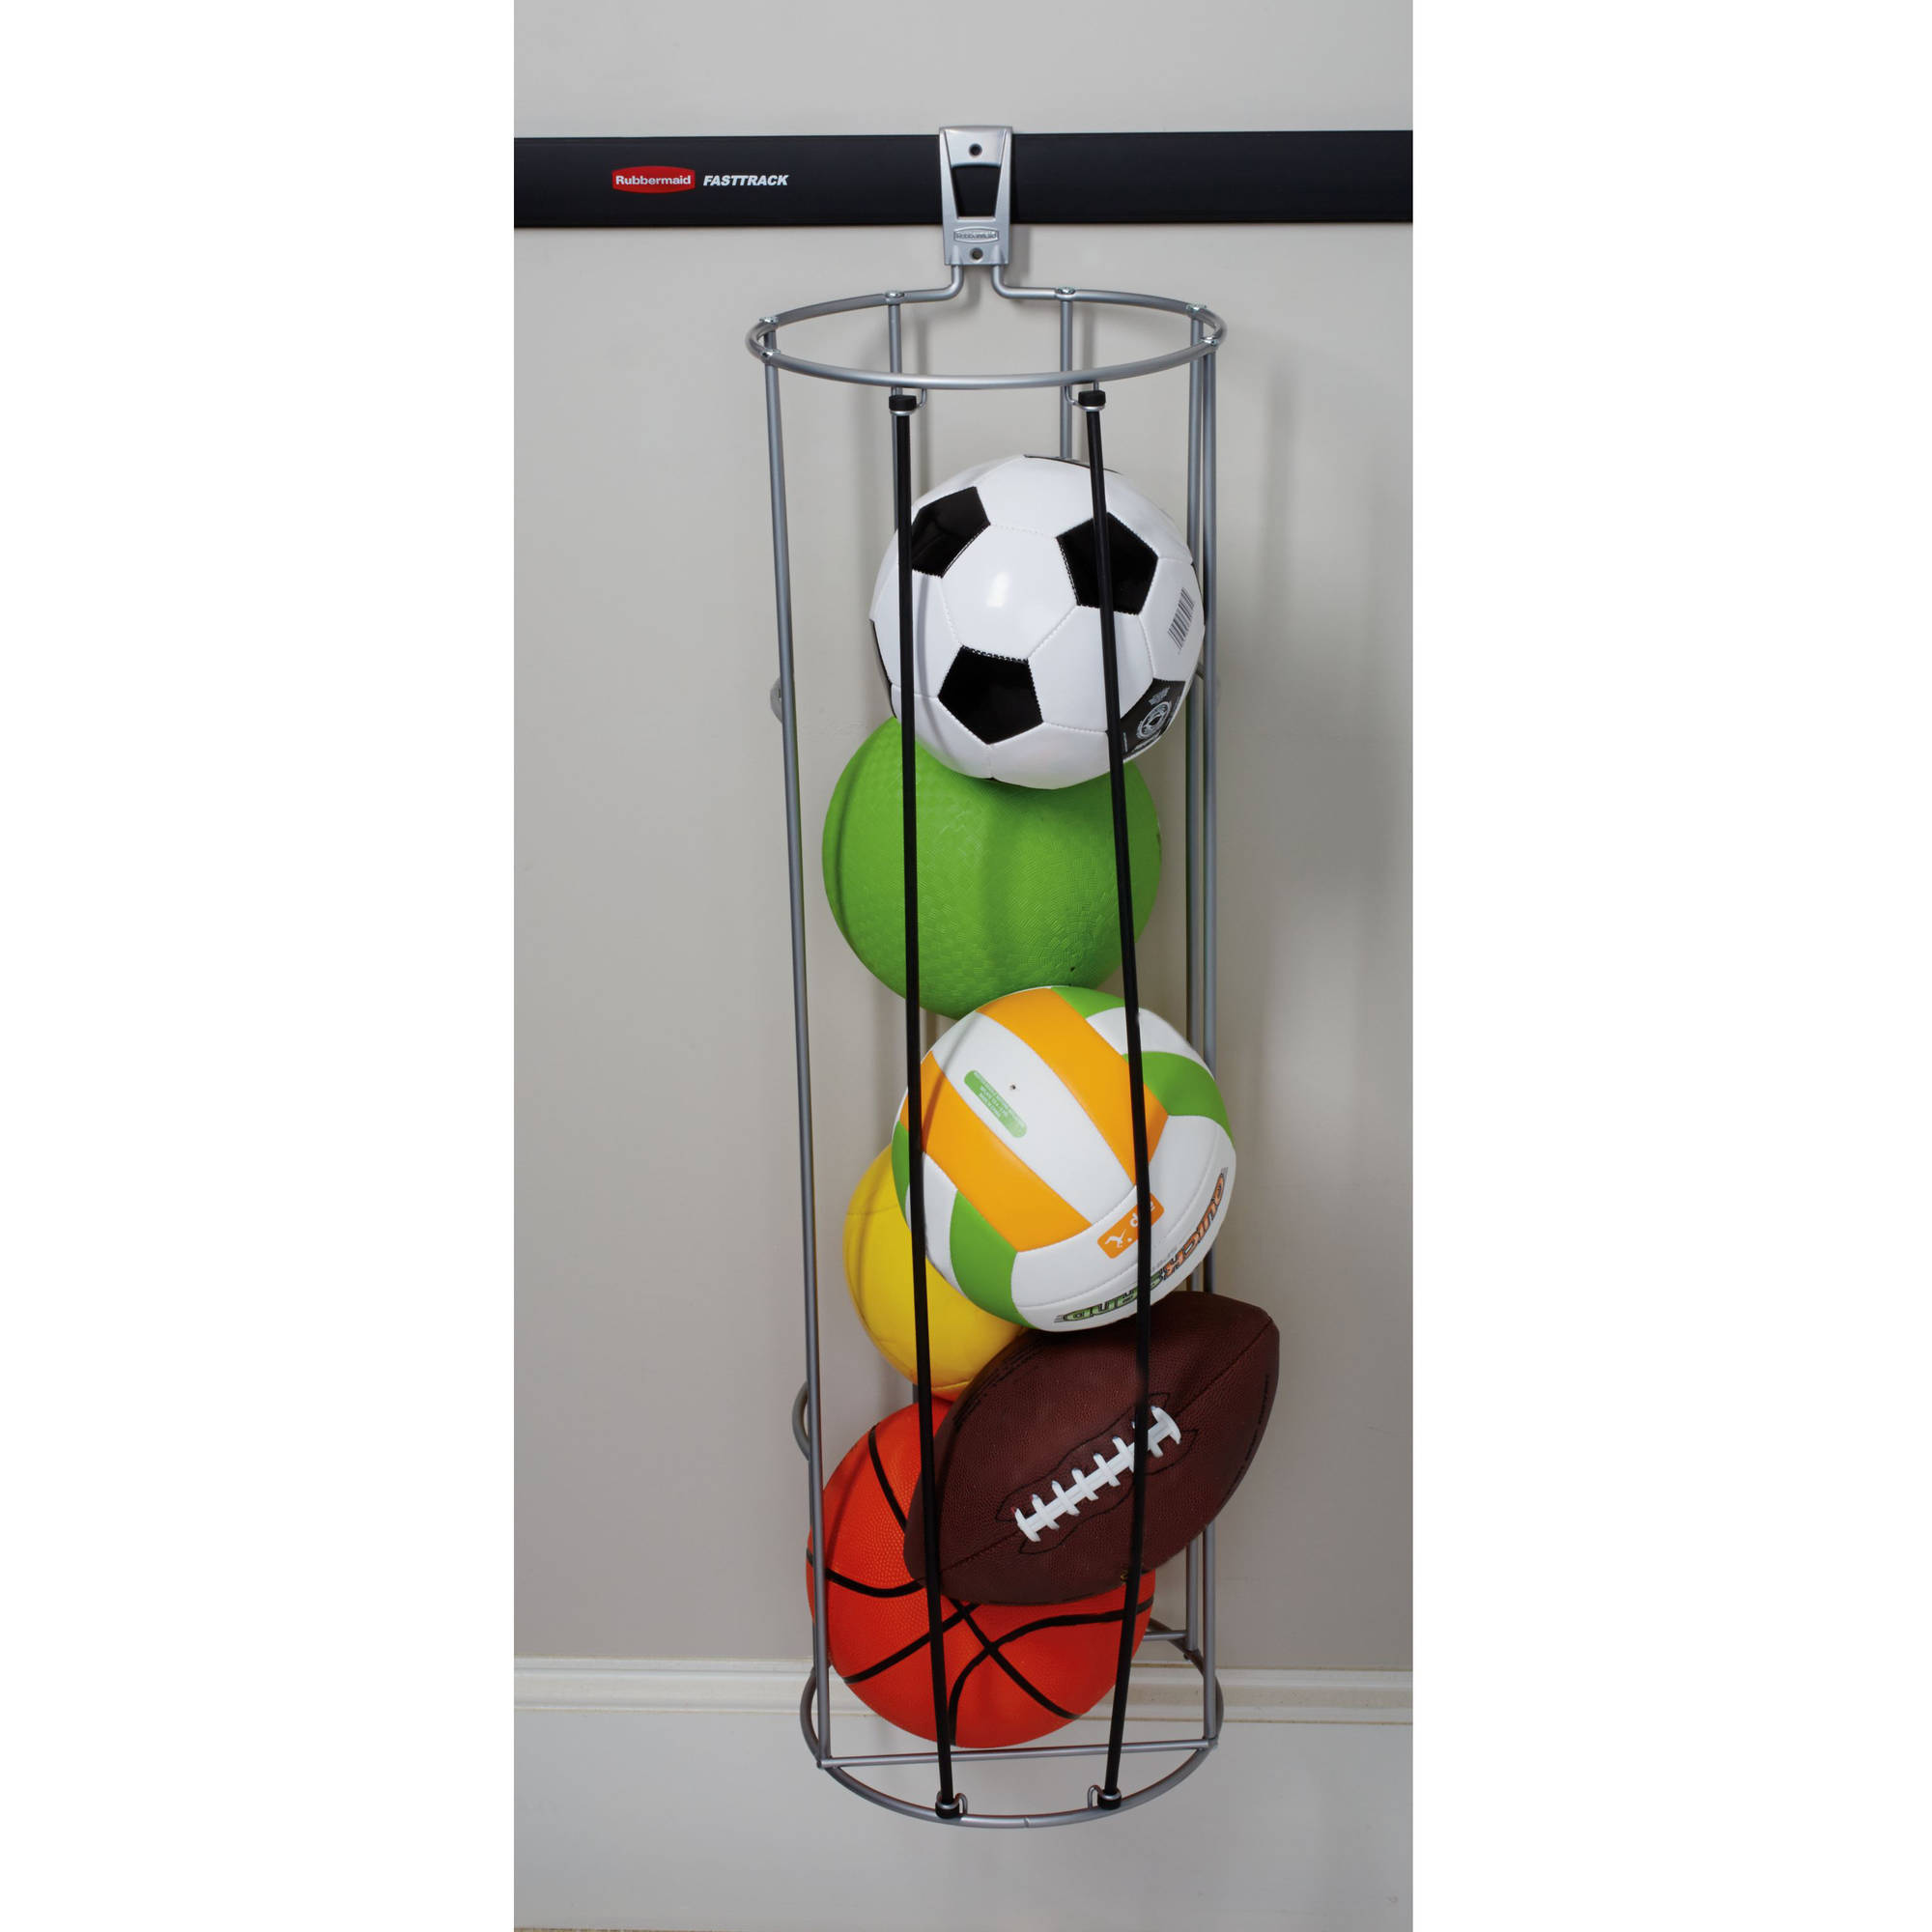 Rubbermaid Home Prod Dorfile 1784462 FastTrack Vertical Ball Rack    Walmart.com